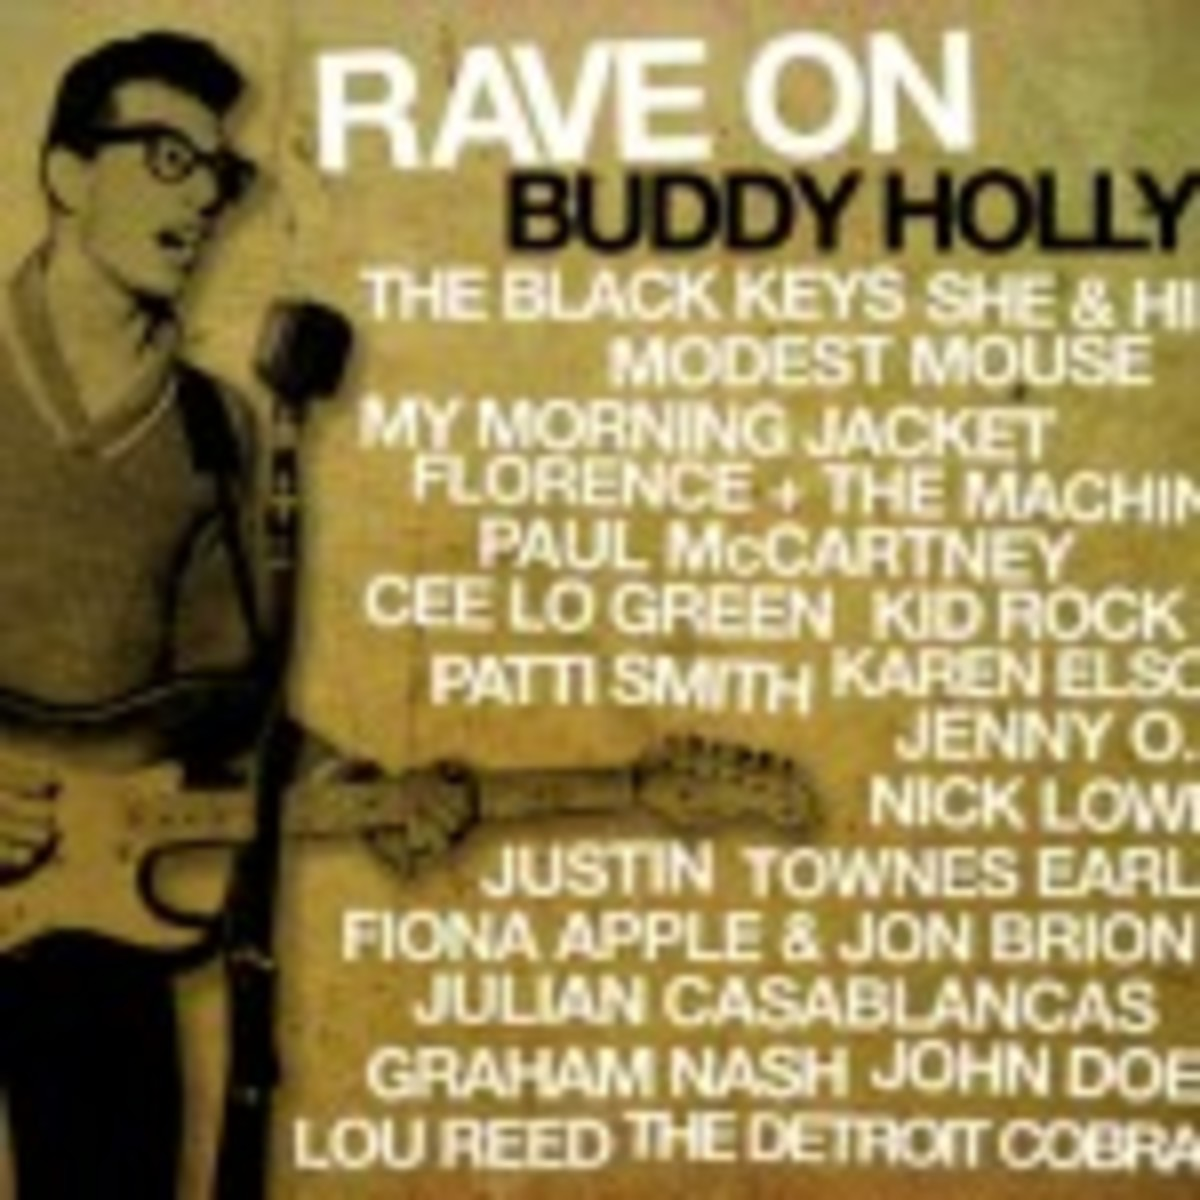 Rave On Buddy Holly cover